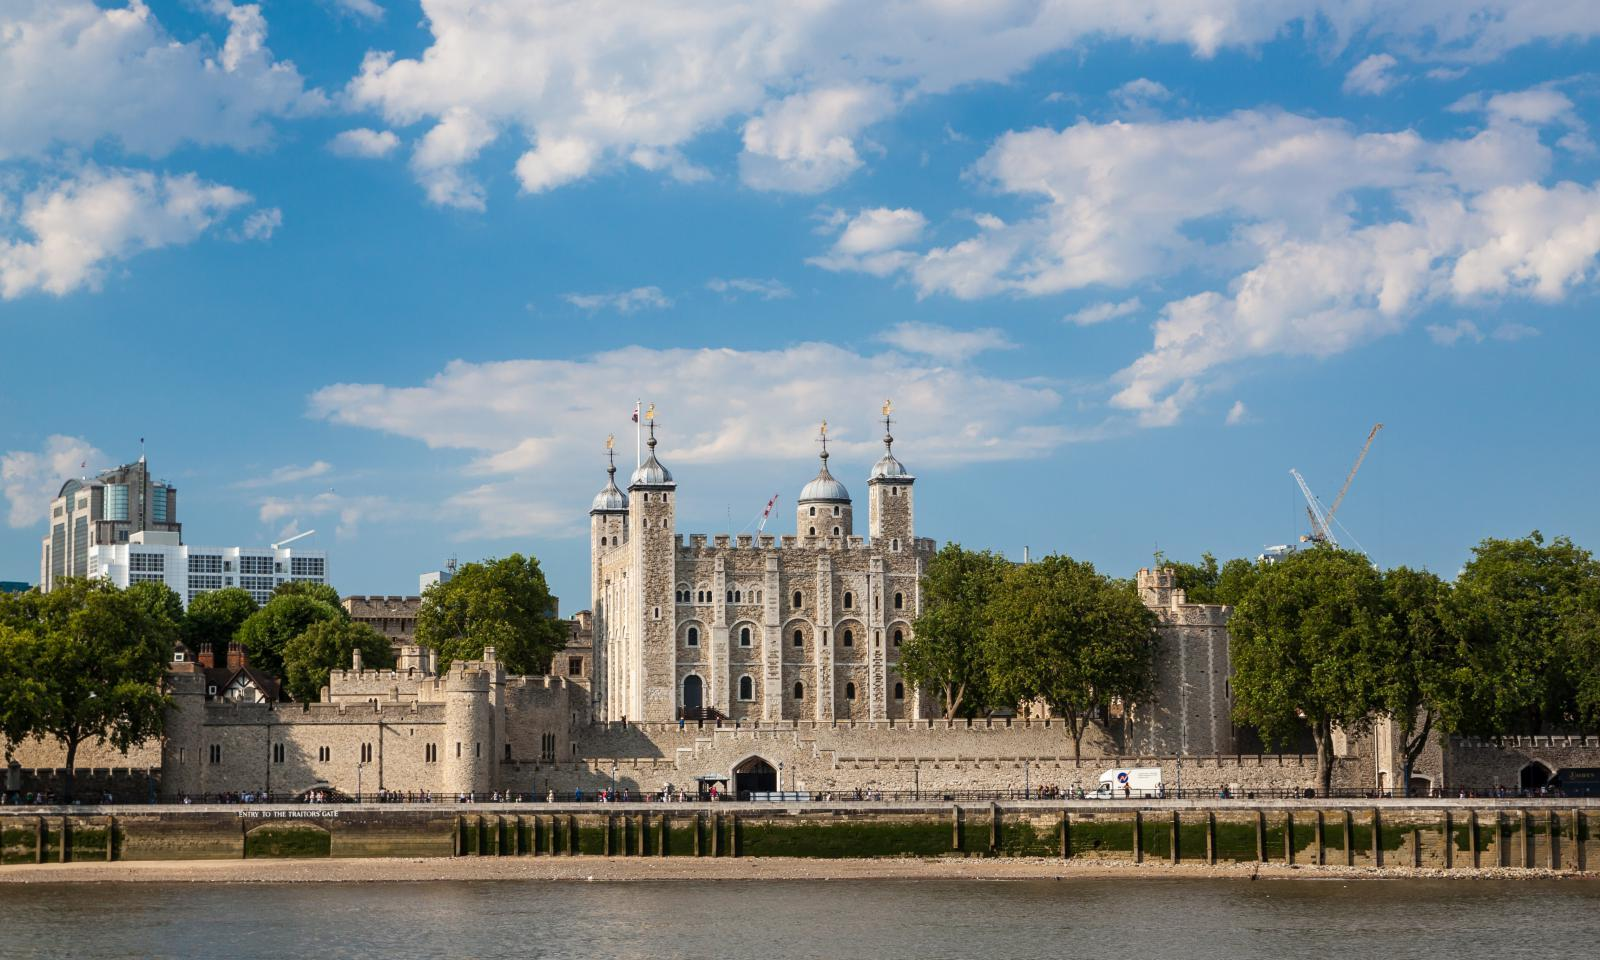 Der Tower of London an der Themse